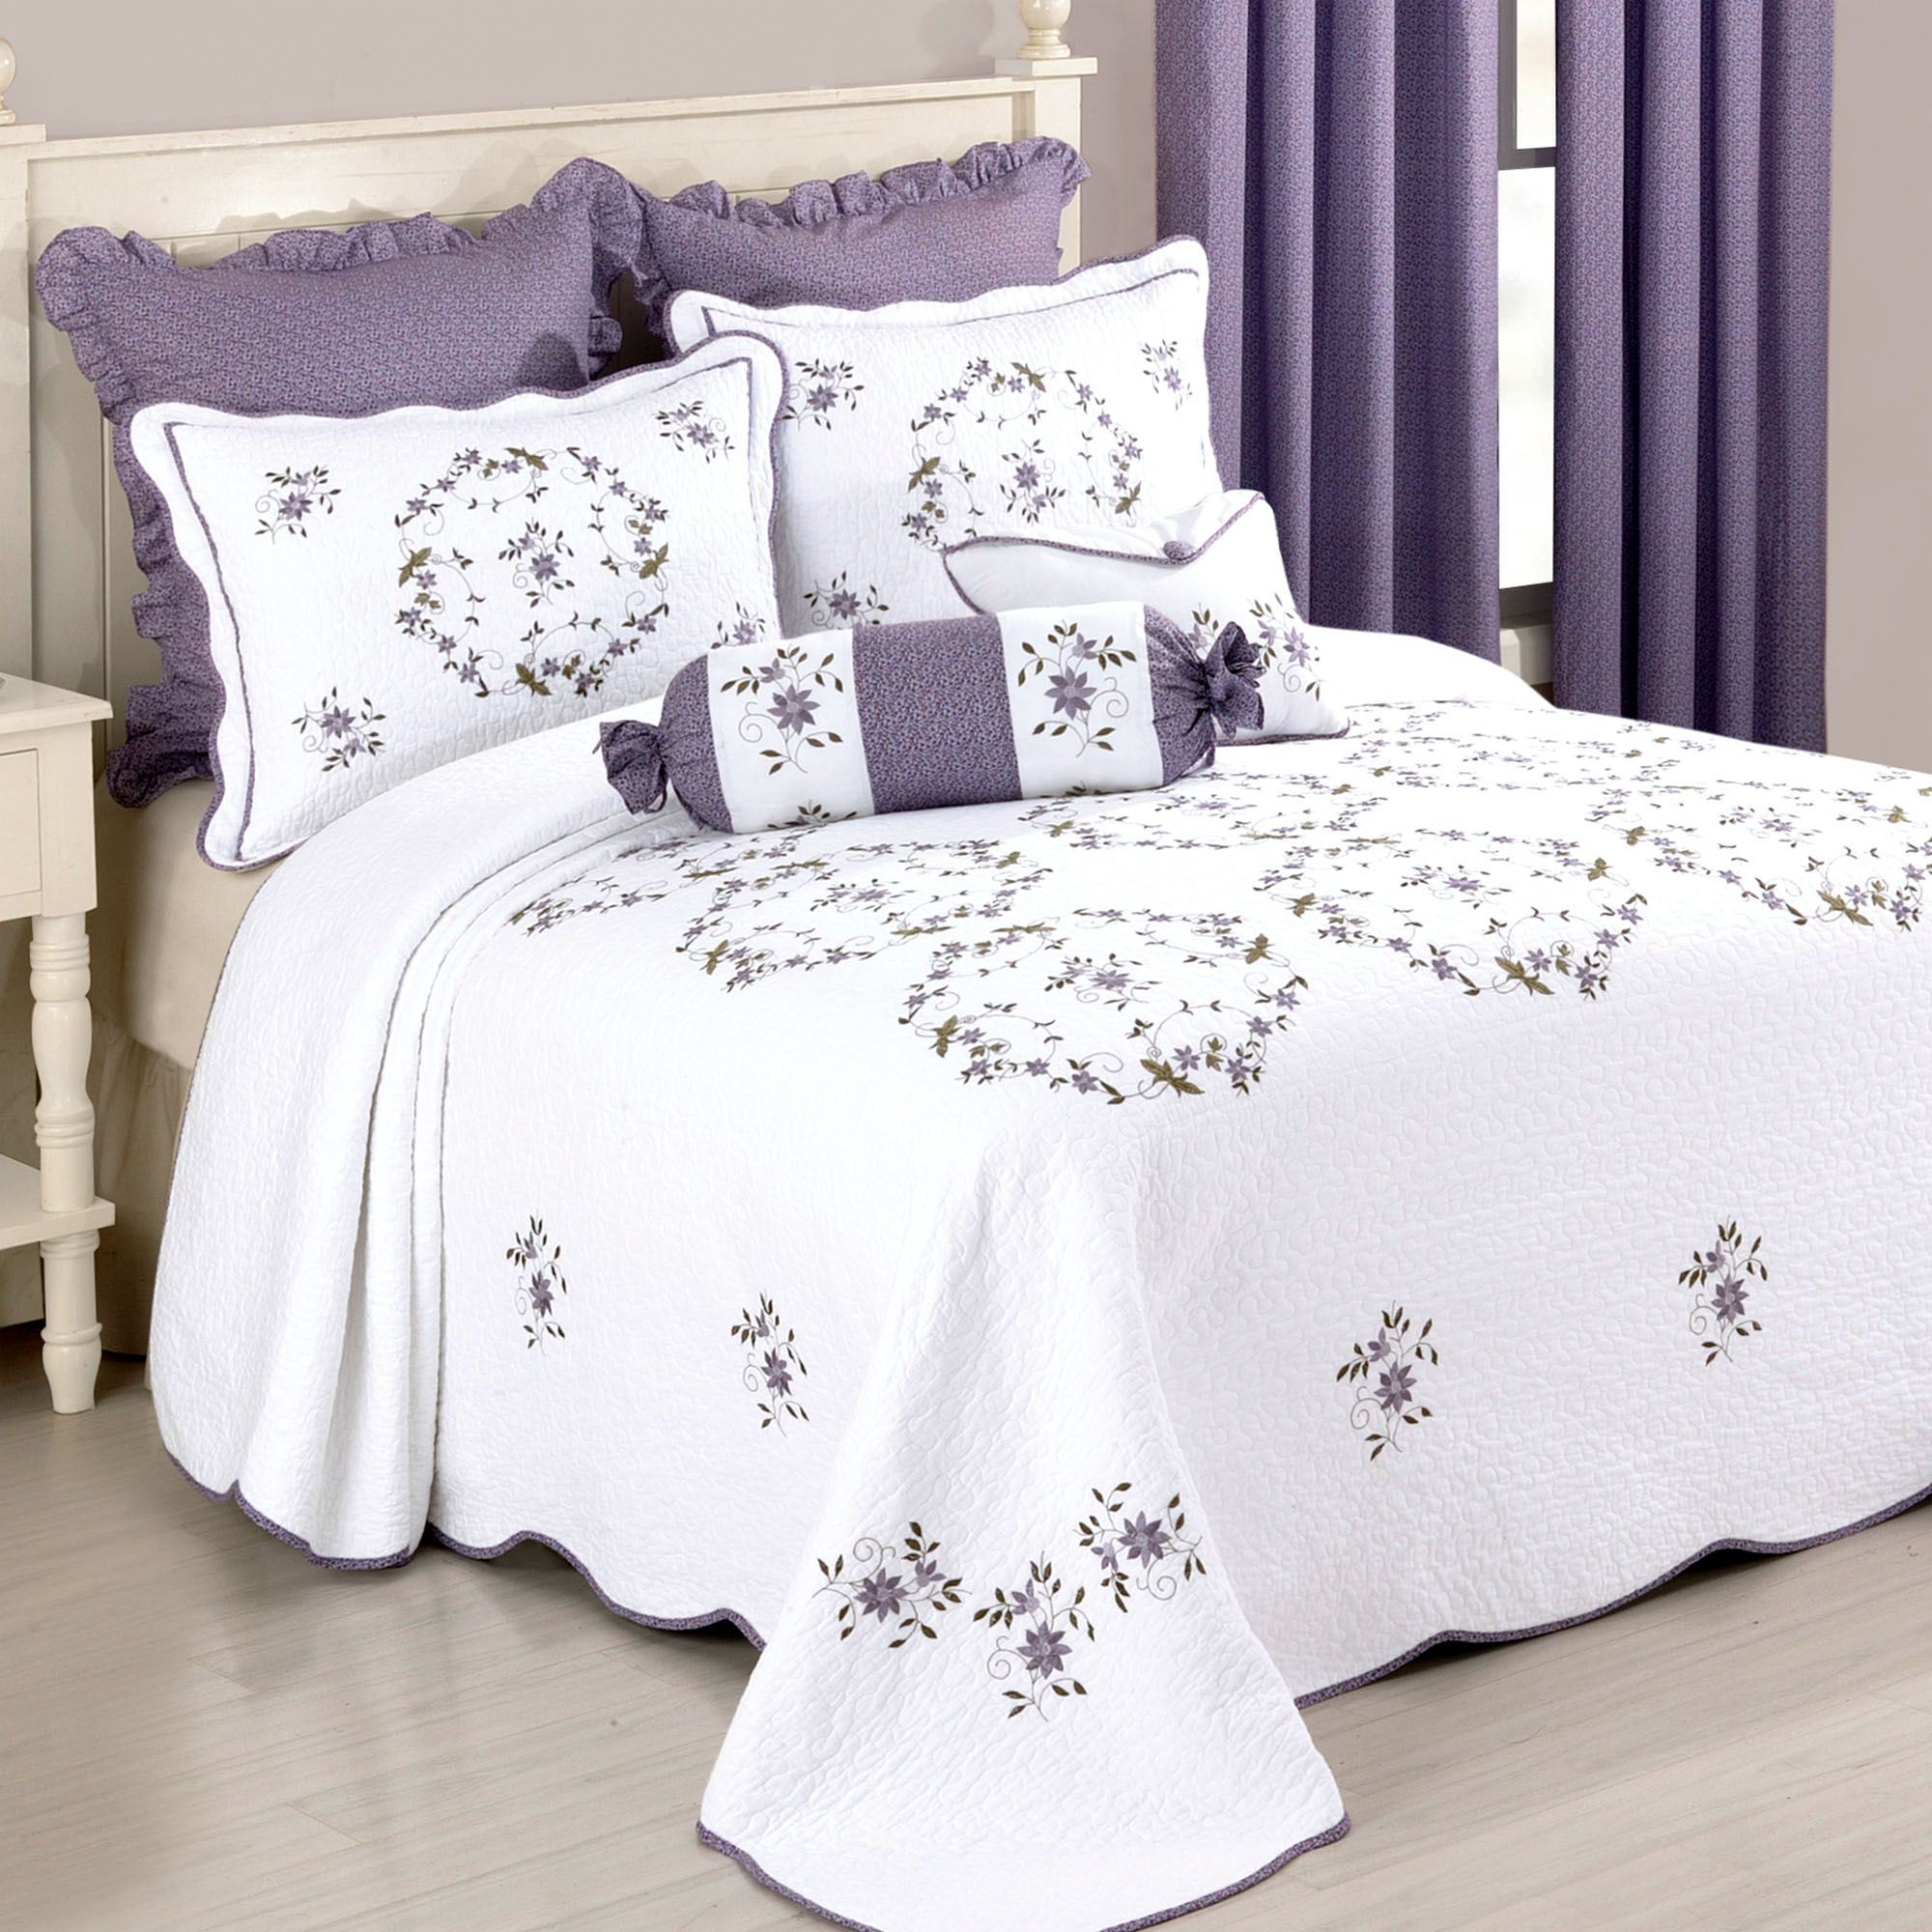 Gwen Embroidered Floral Quilted Bedspread